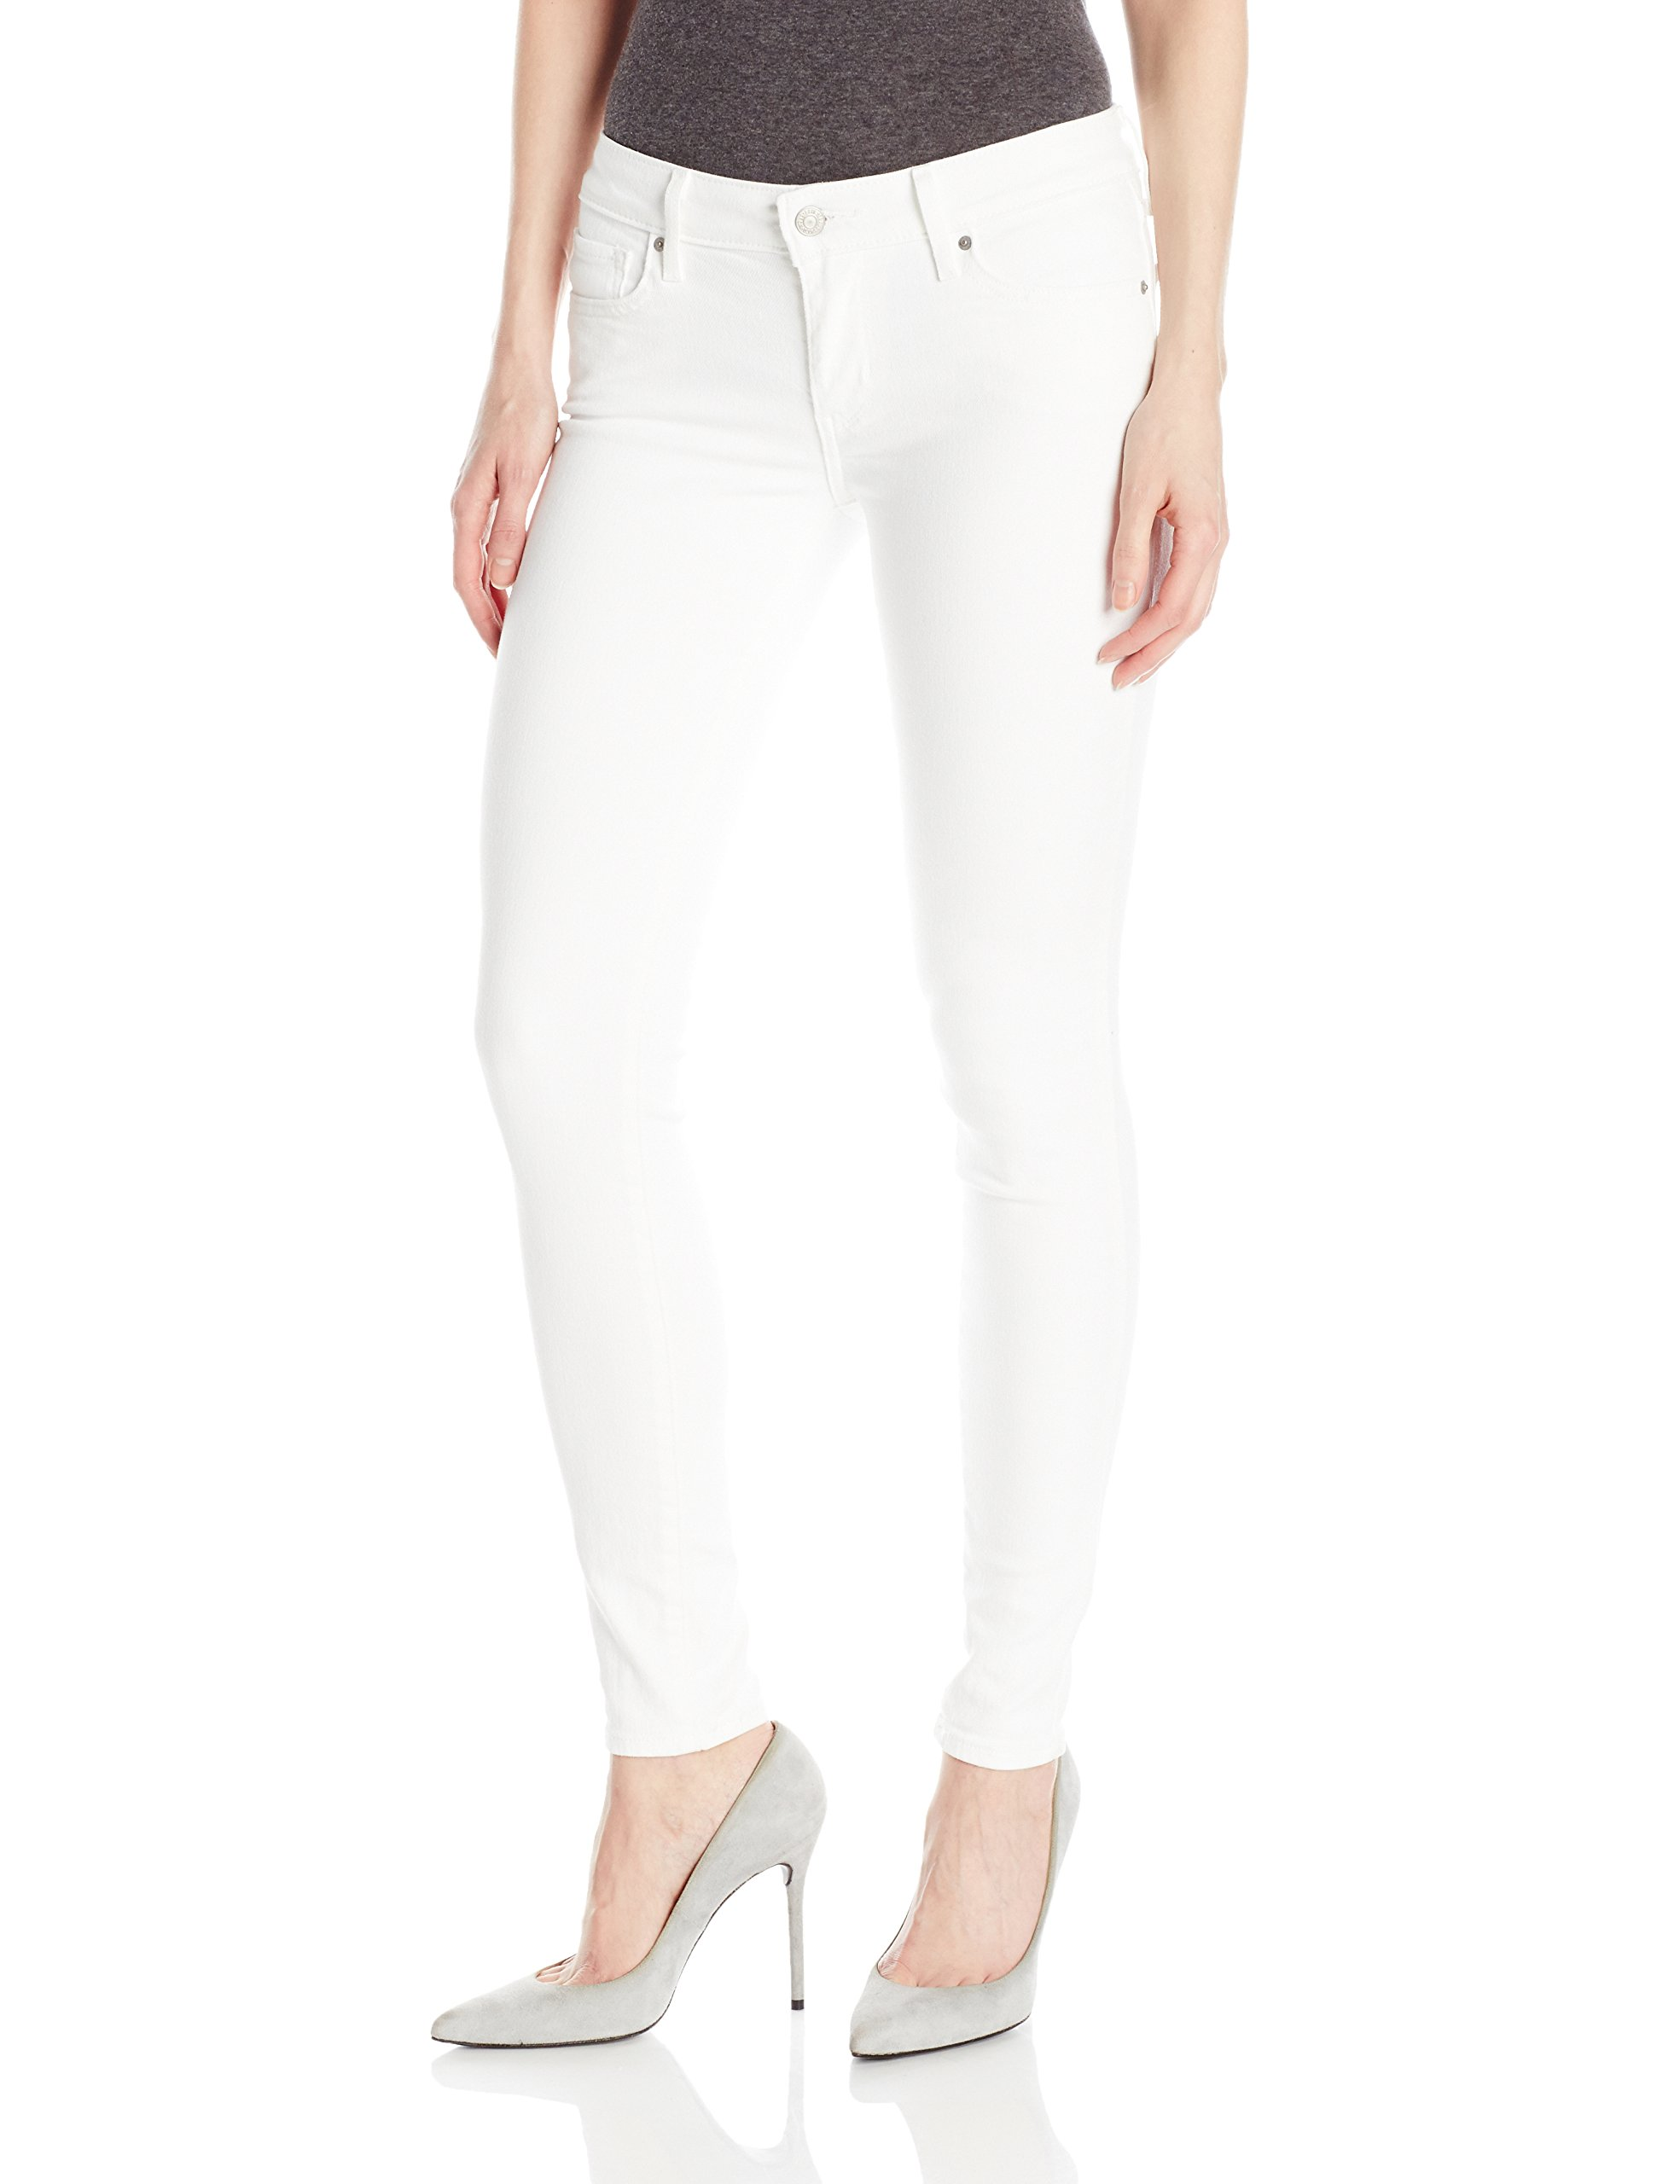 Levi's Women's 711 Skinny Jeans, Soft Clean White, 28 (US 6) R by Levi's